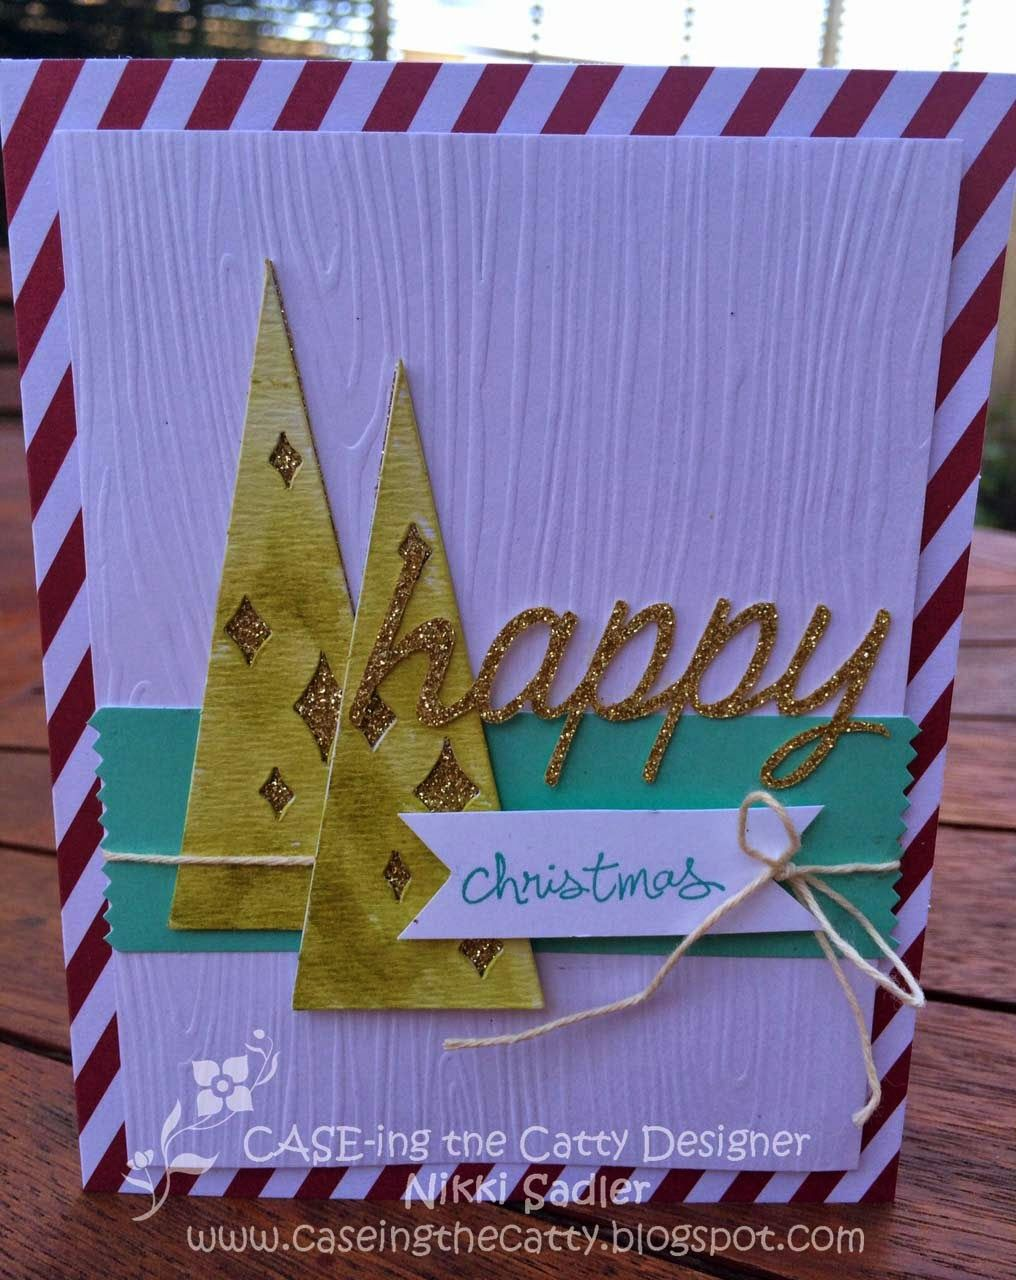 CASE-ing the Catty: CTC 13 - Christmas Cards